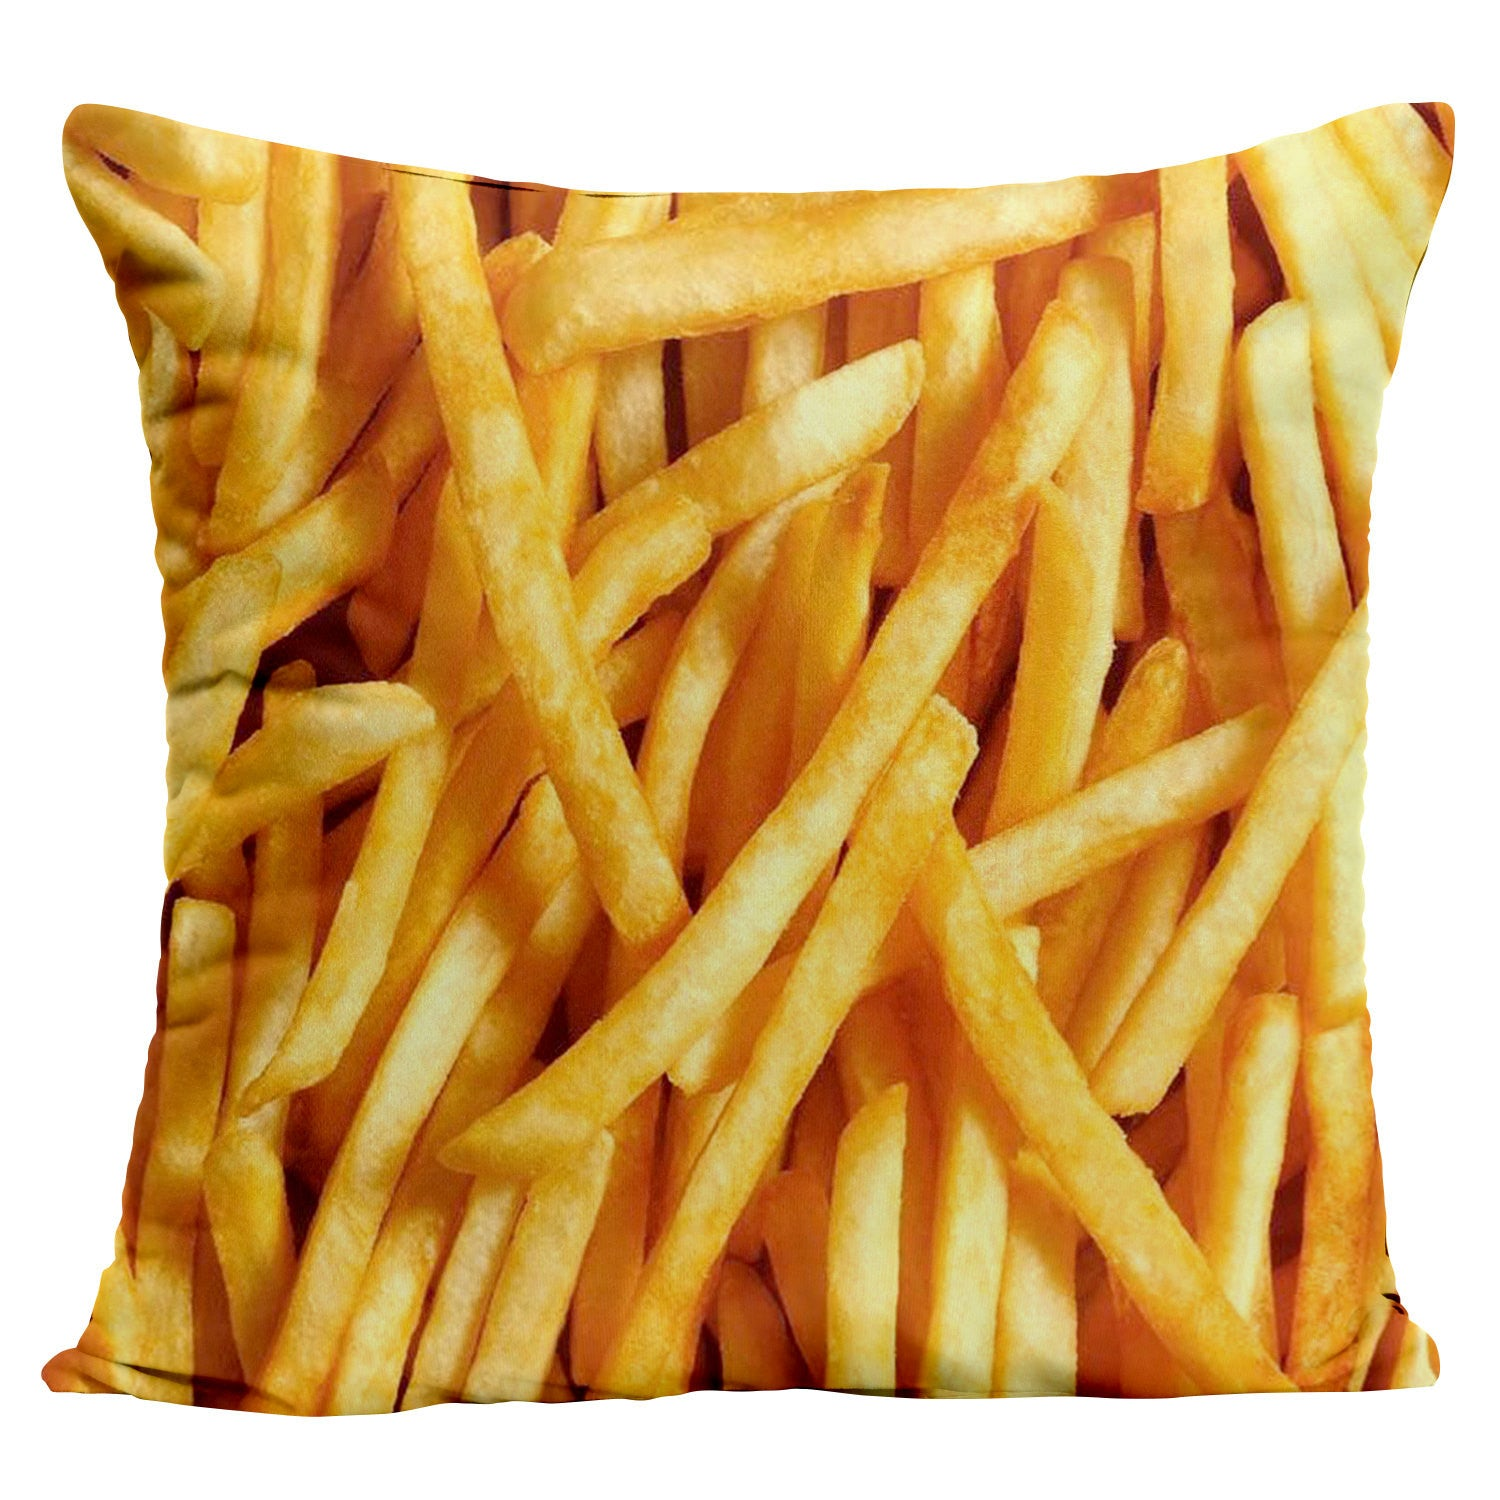 French Fries Pillow - Shweeet